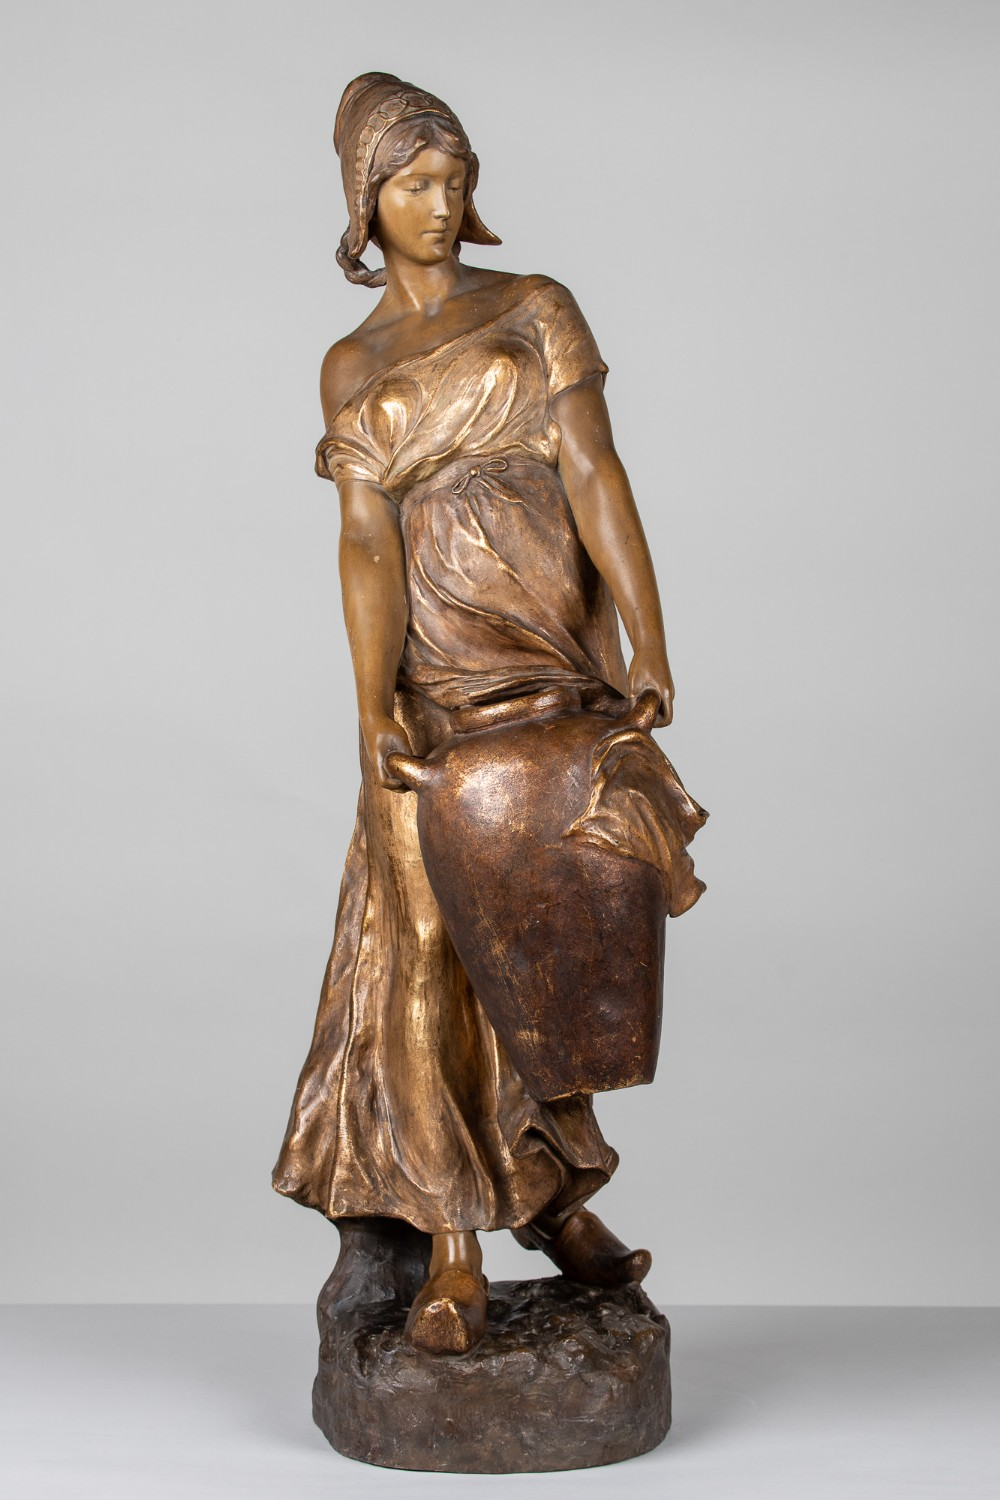 a stunning 19th century large terracotta sculpture by frederic goldscheider